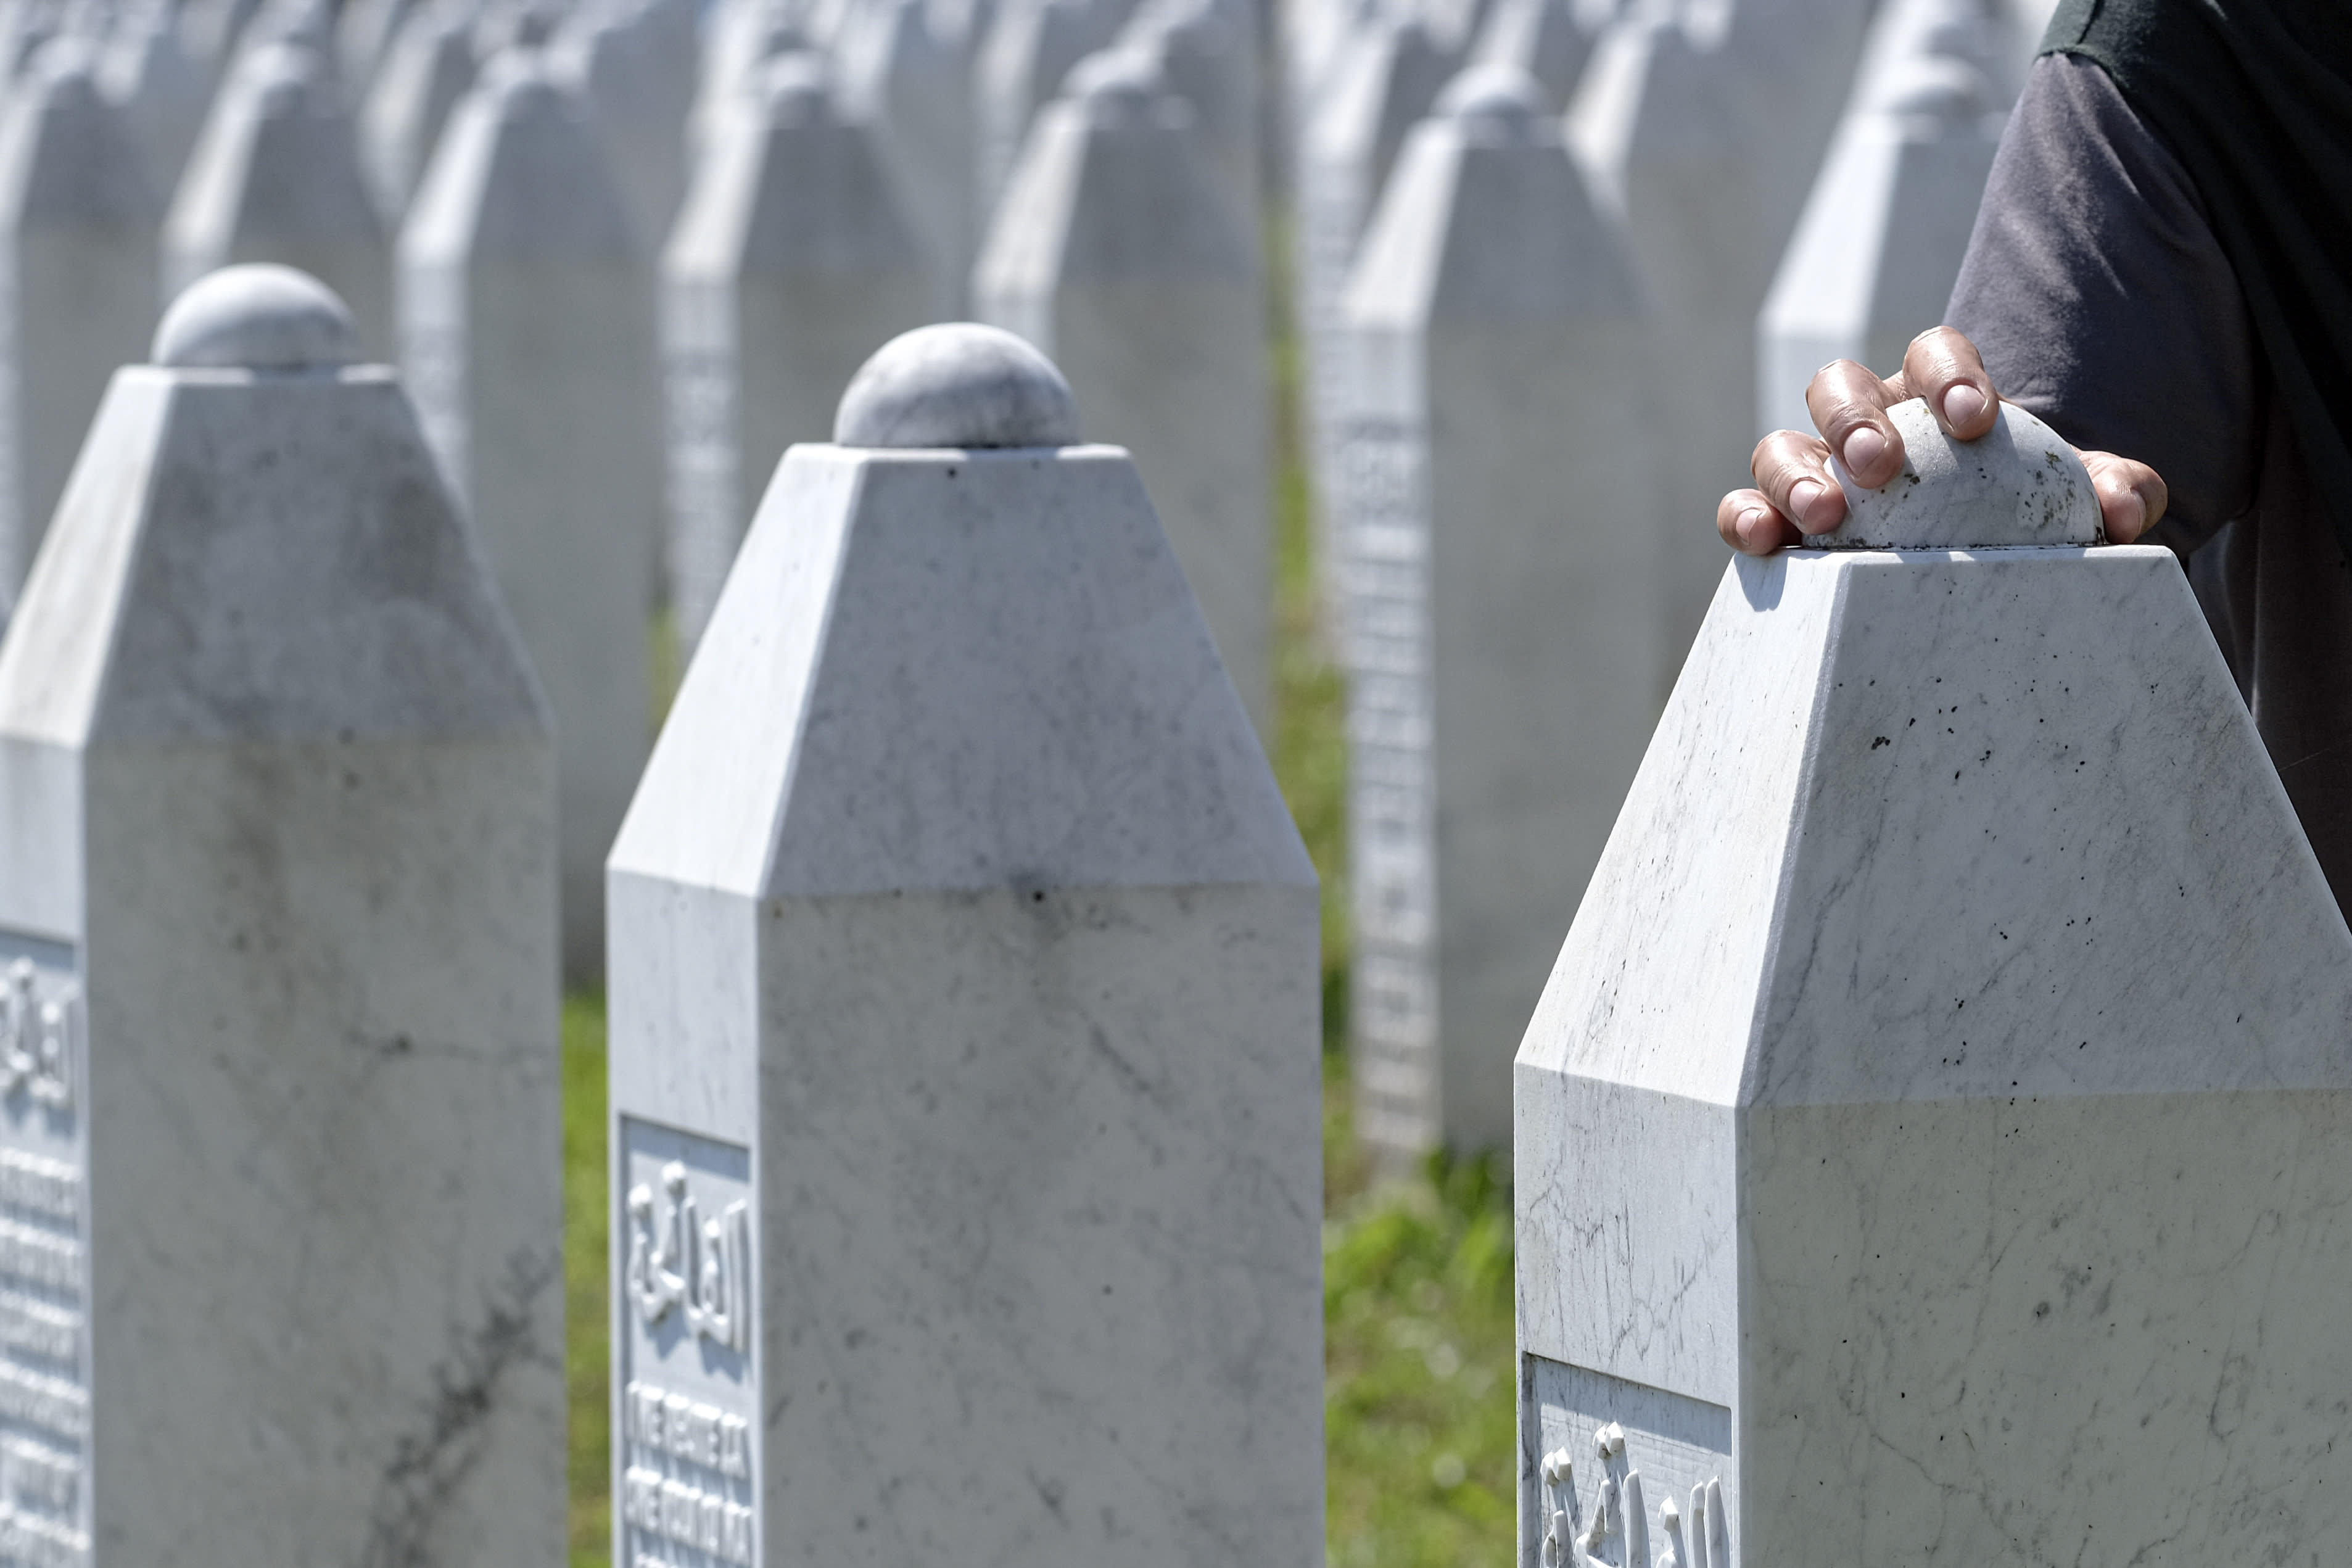 A woman touches a grave stone in Potocari, near Srebrenica, Bosnia, Saturday, July 11, 2020. Mourners converged on the eastern Bosnian town of Srebrenica for the 25th anniversary of the country's worst carnage during the 1992-95 war and the only crime in Europe since World War II that has been declared a genocide. (AP Photo/Kemal Softic)